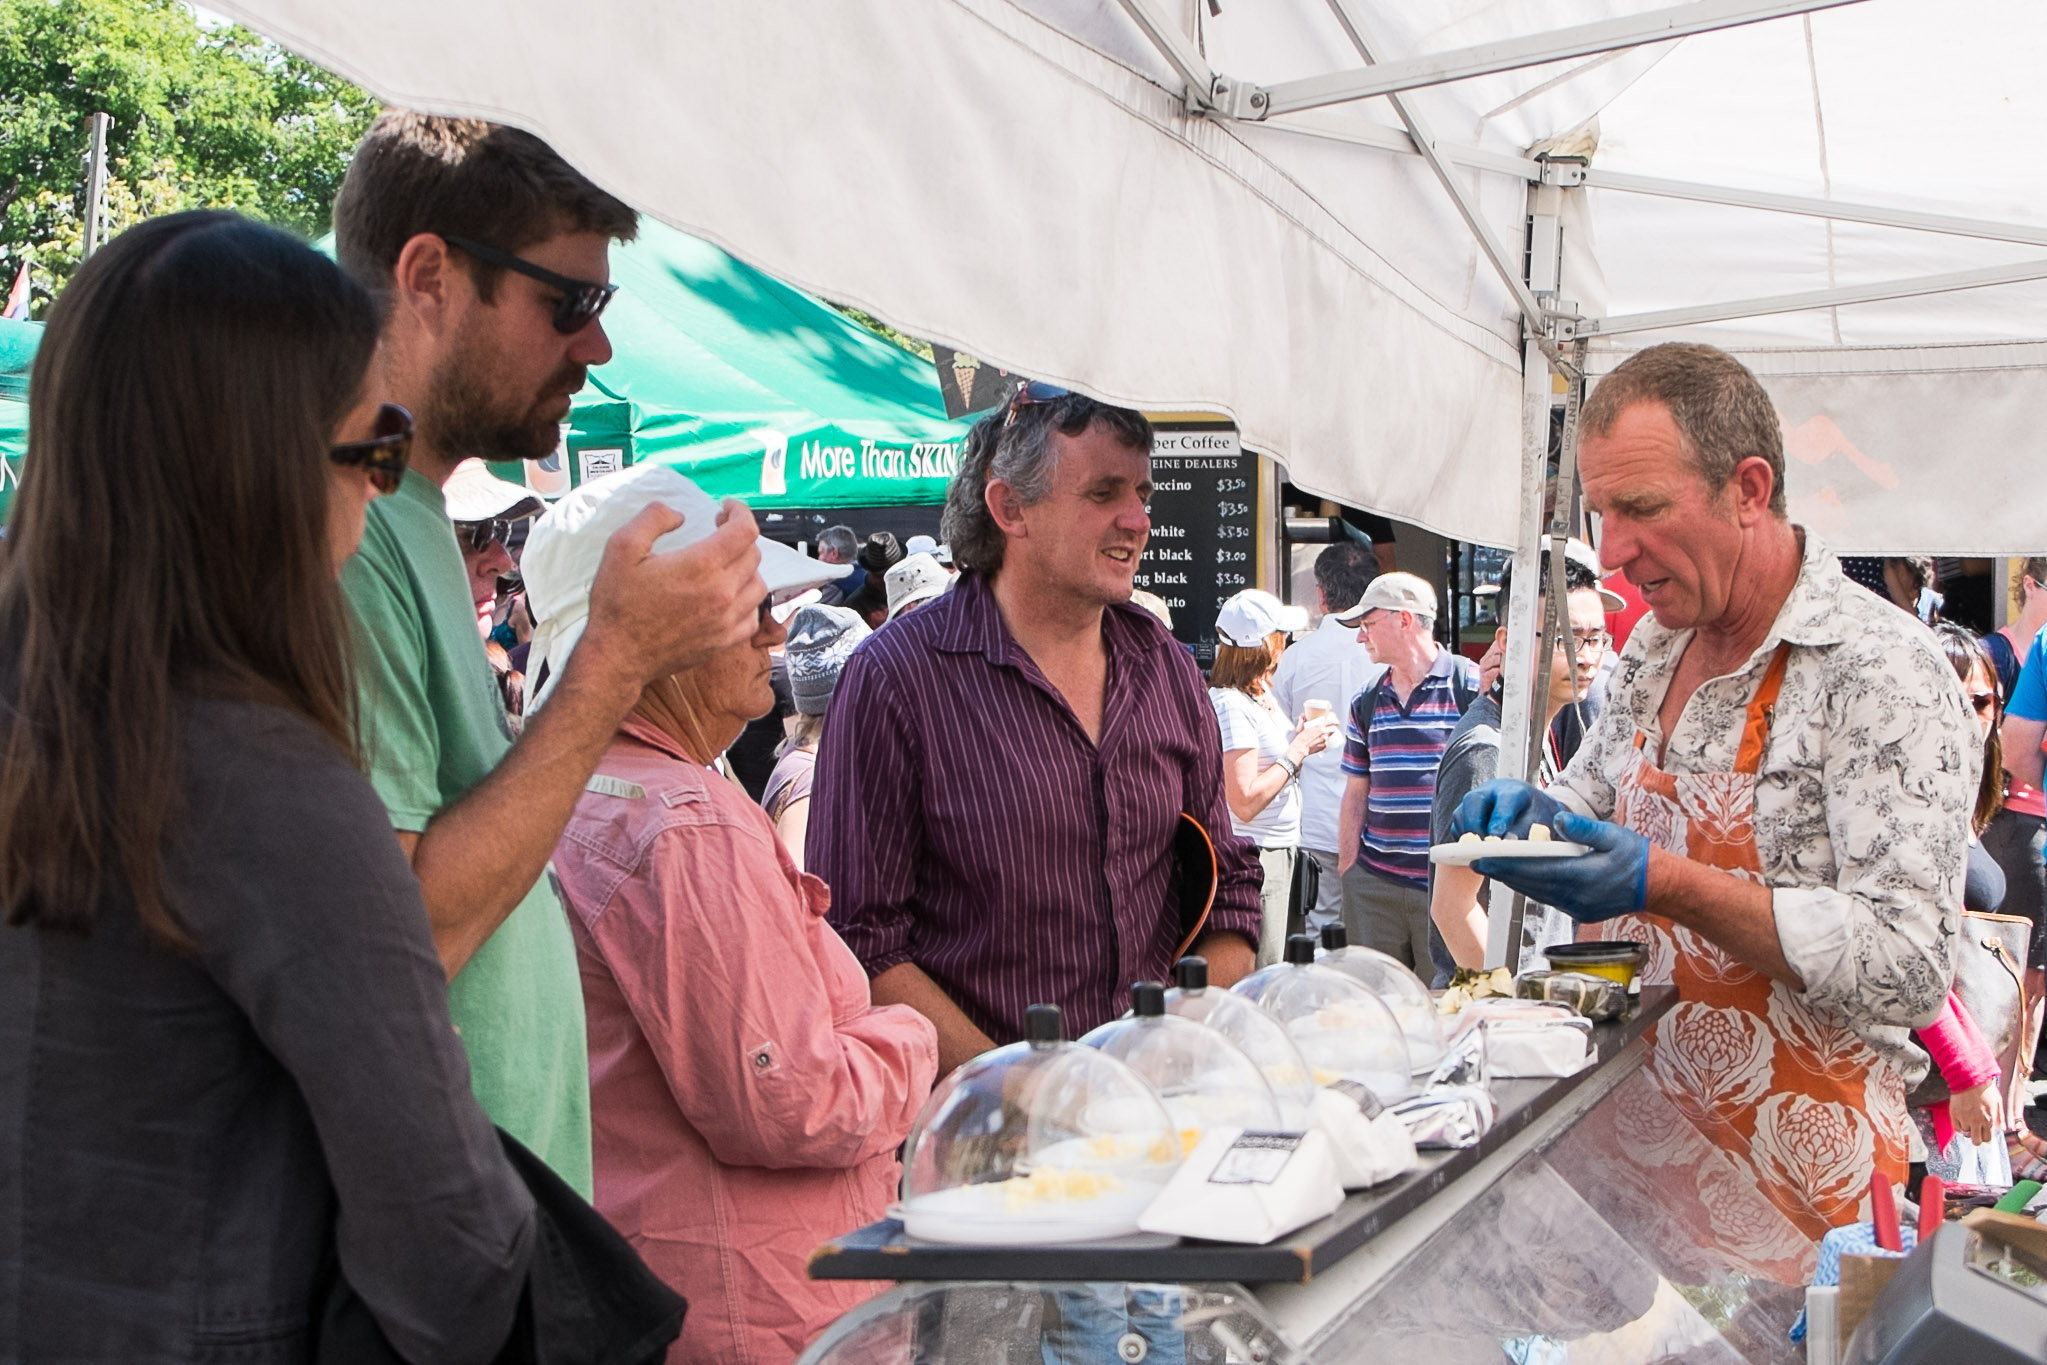 Tastings at the Bruny Island Cheese Co stall